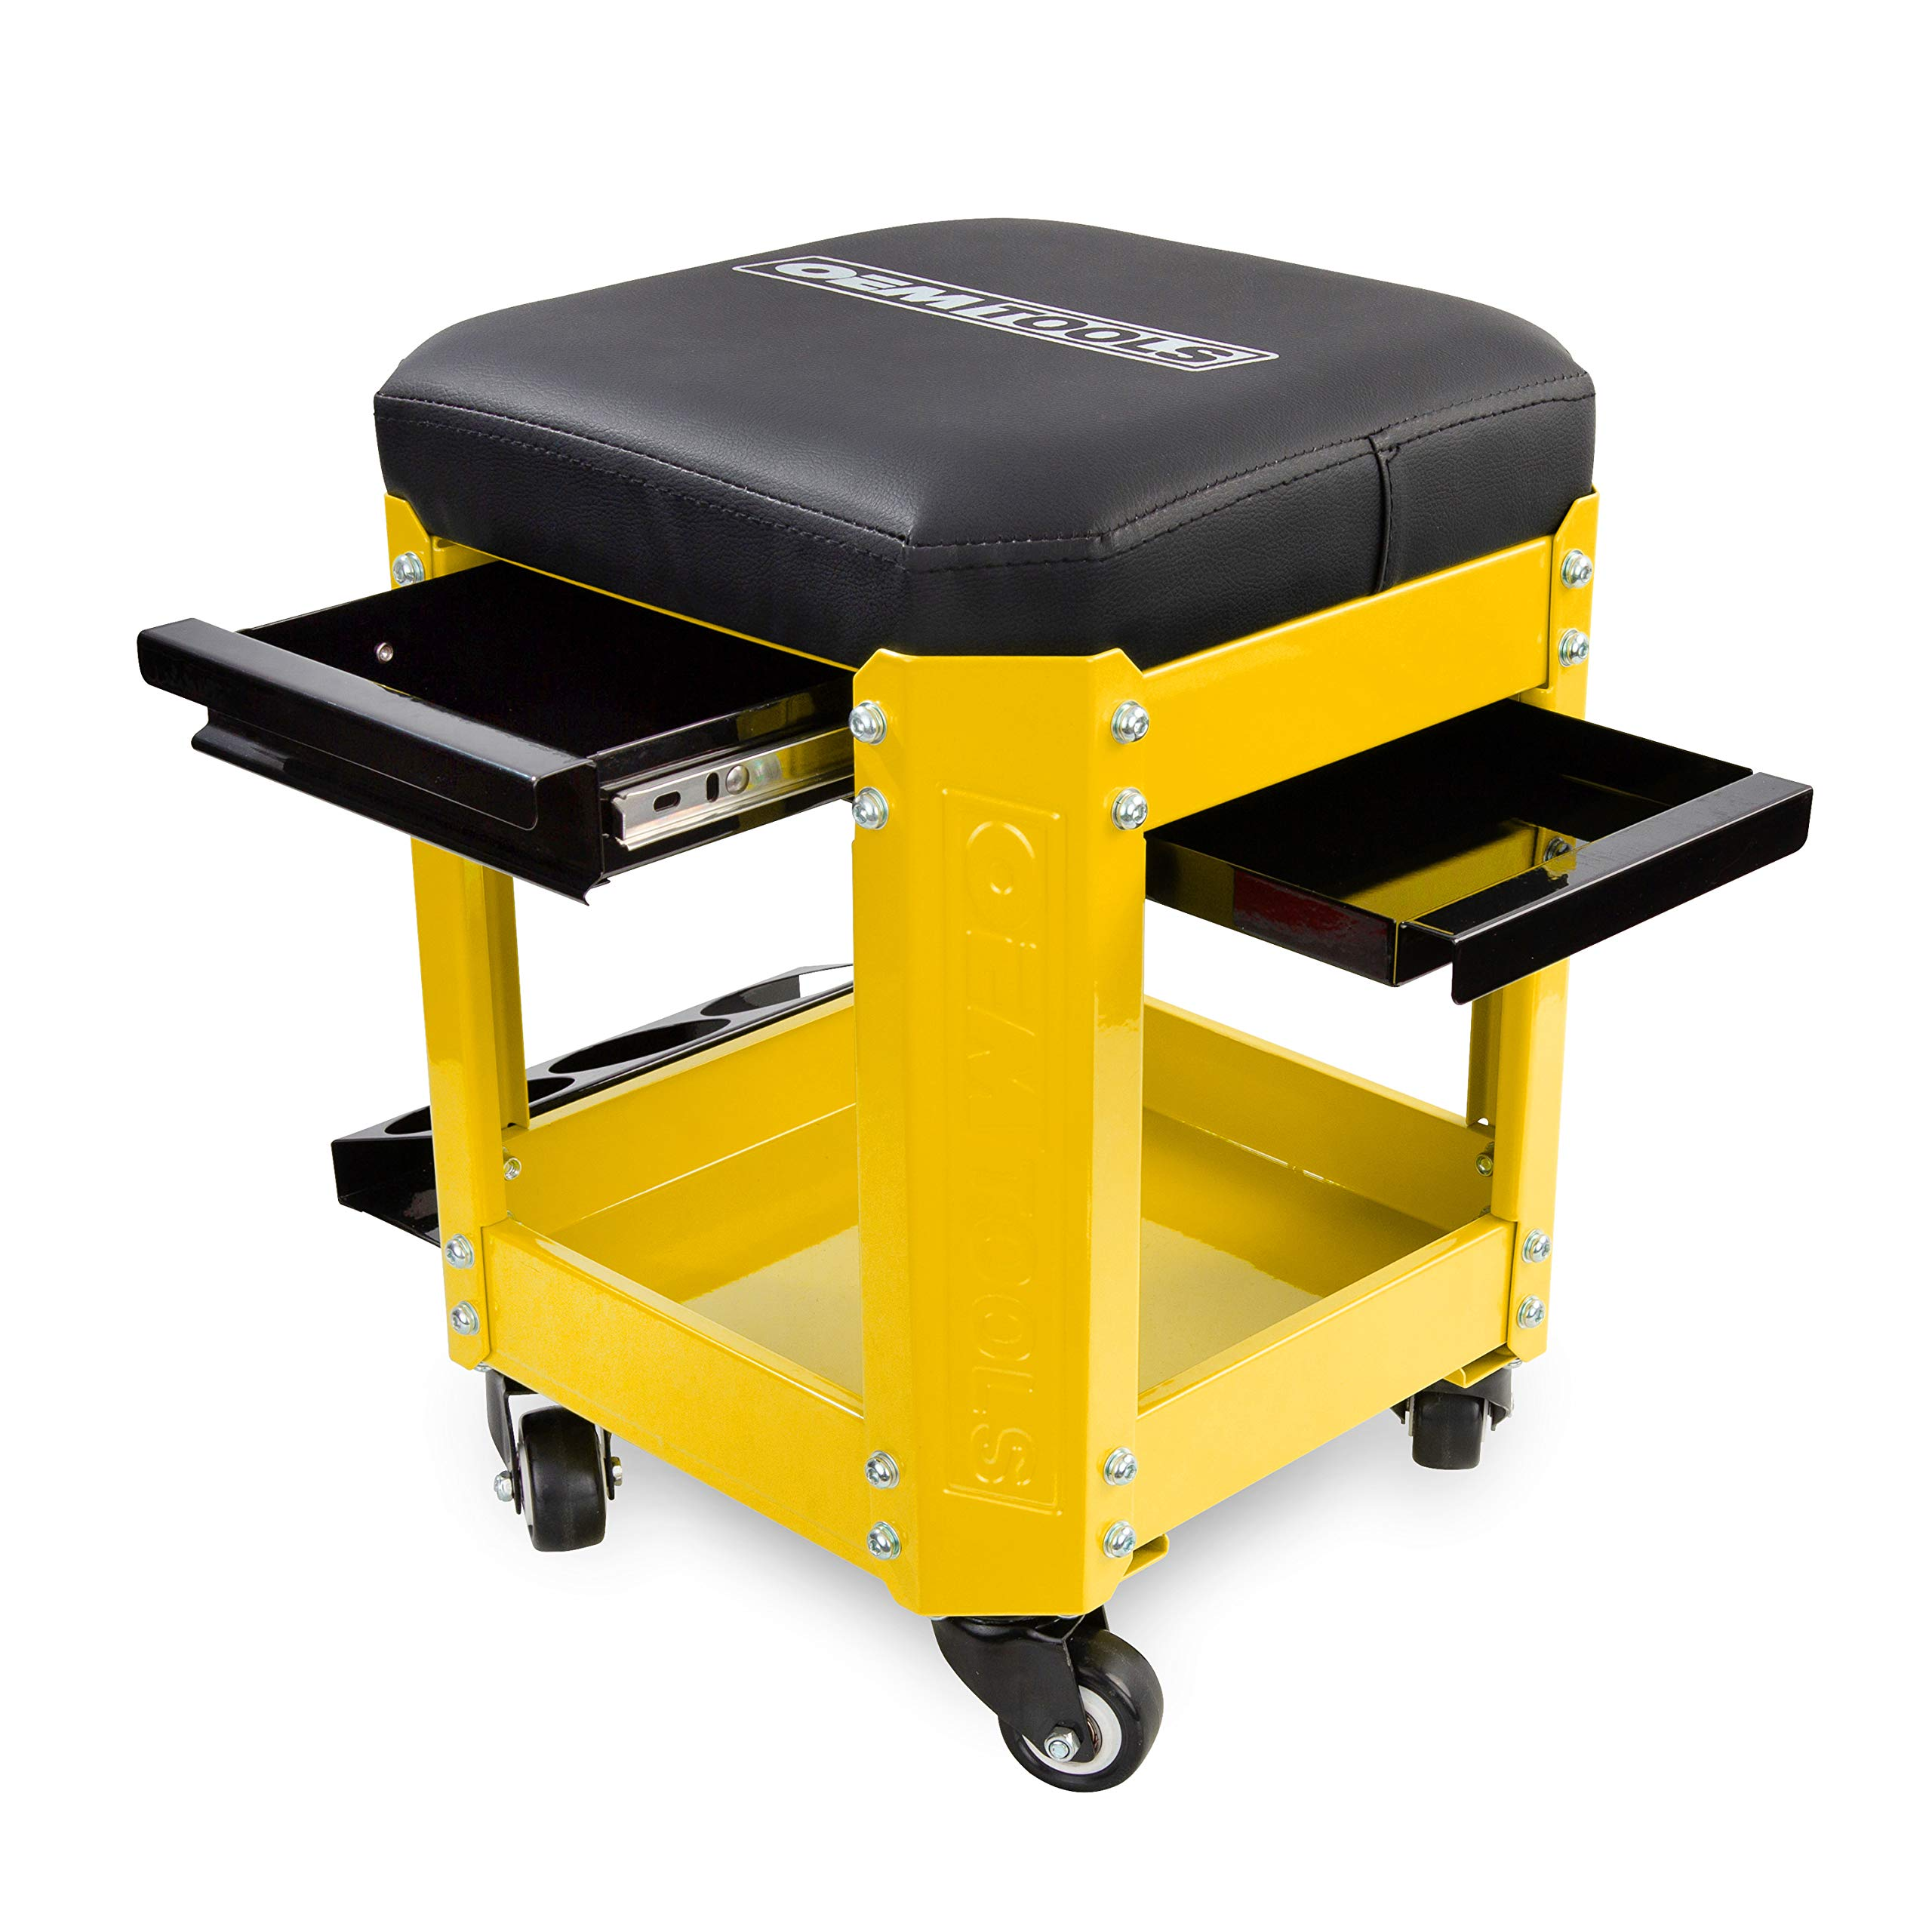 OEMTOOL 24999 Yellow Rolling Workshop Creeper Seat with 2 Tool Storage Drawers Under Seat Parts Storage Can Holders by OEMTOOLS